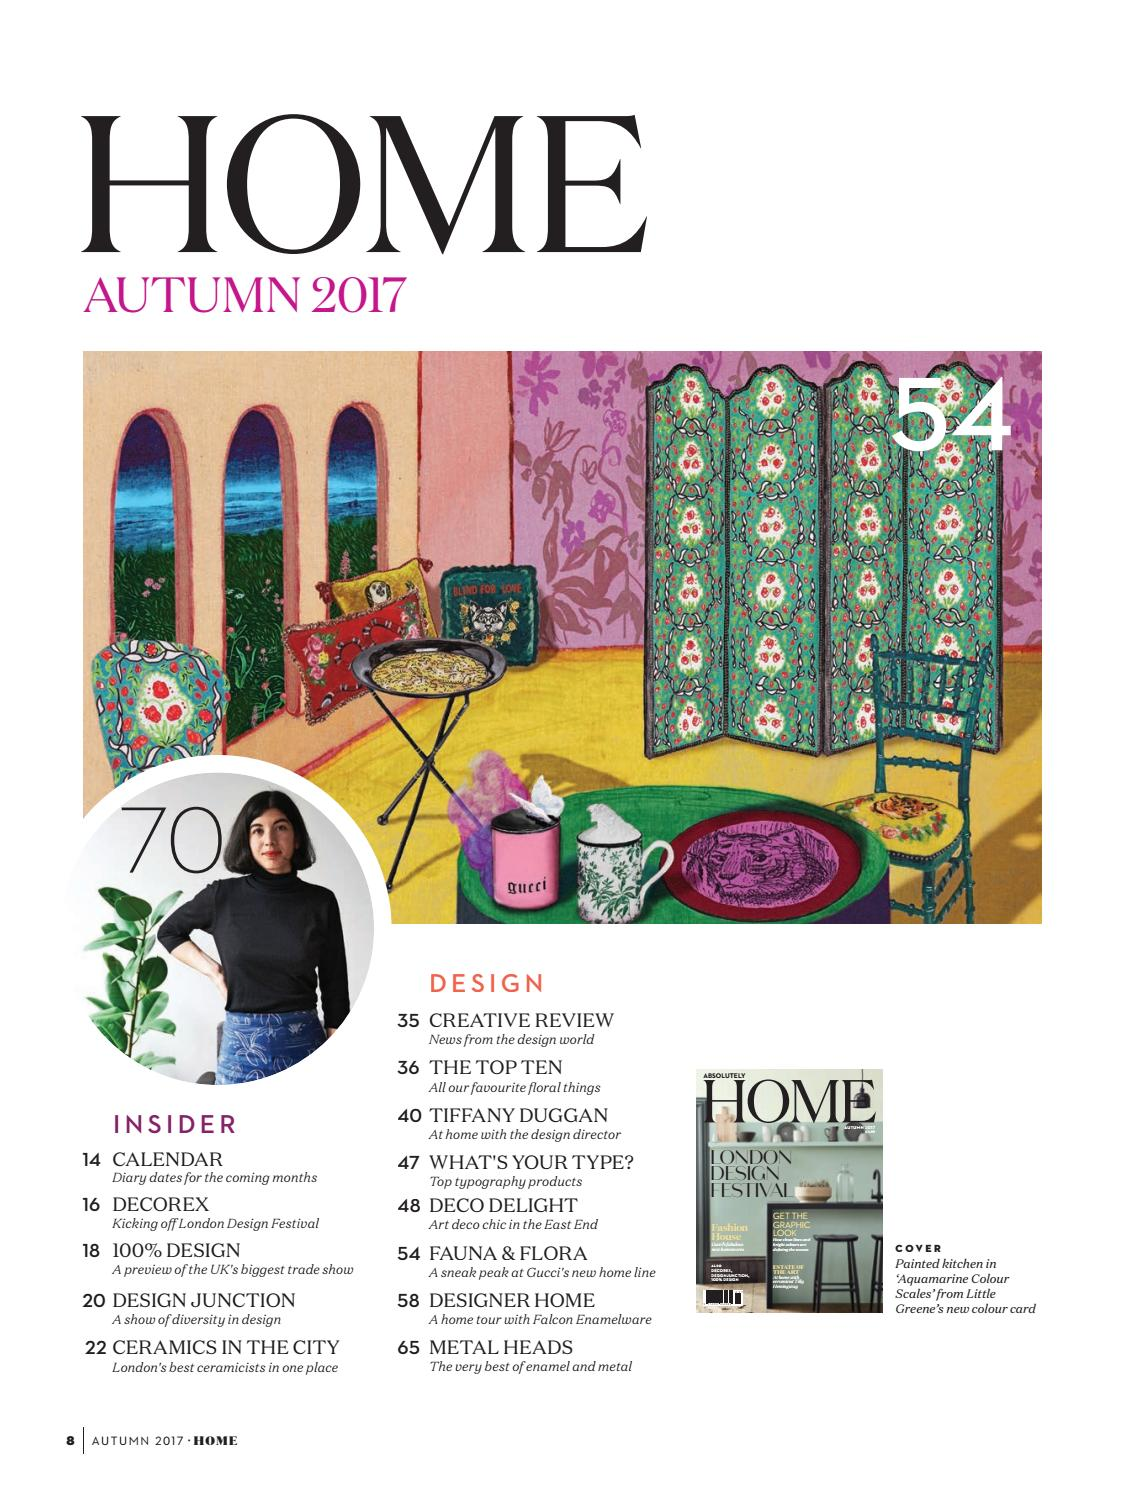 absolutely home autumn 2017 by zest media london   issuu